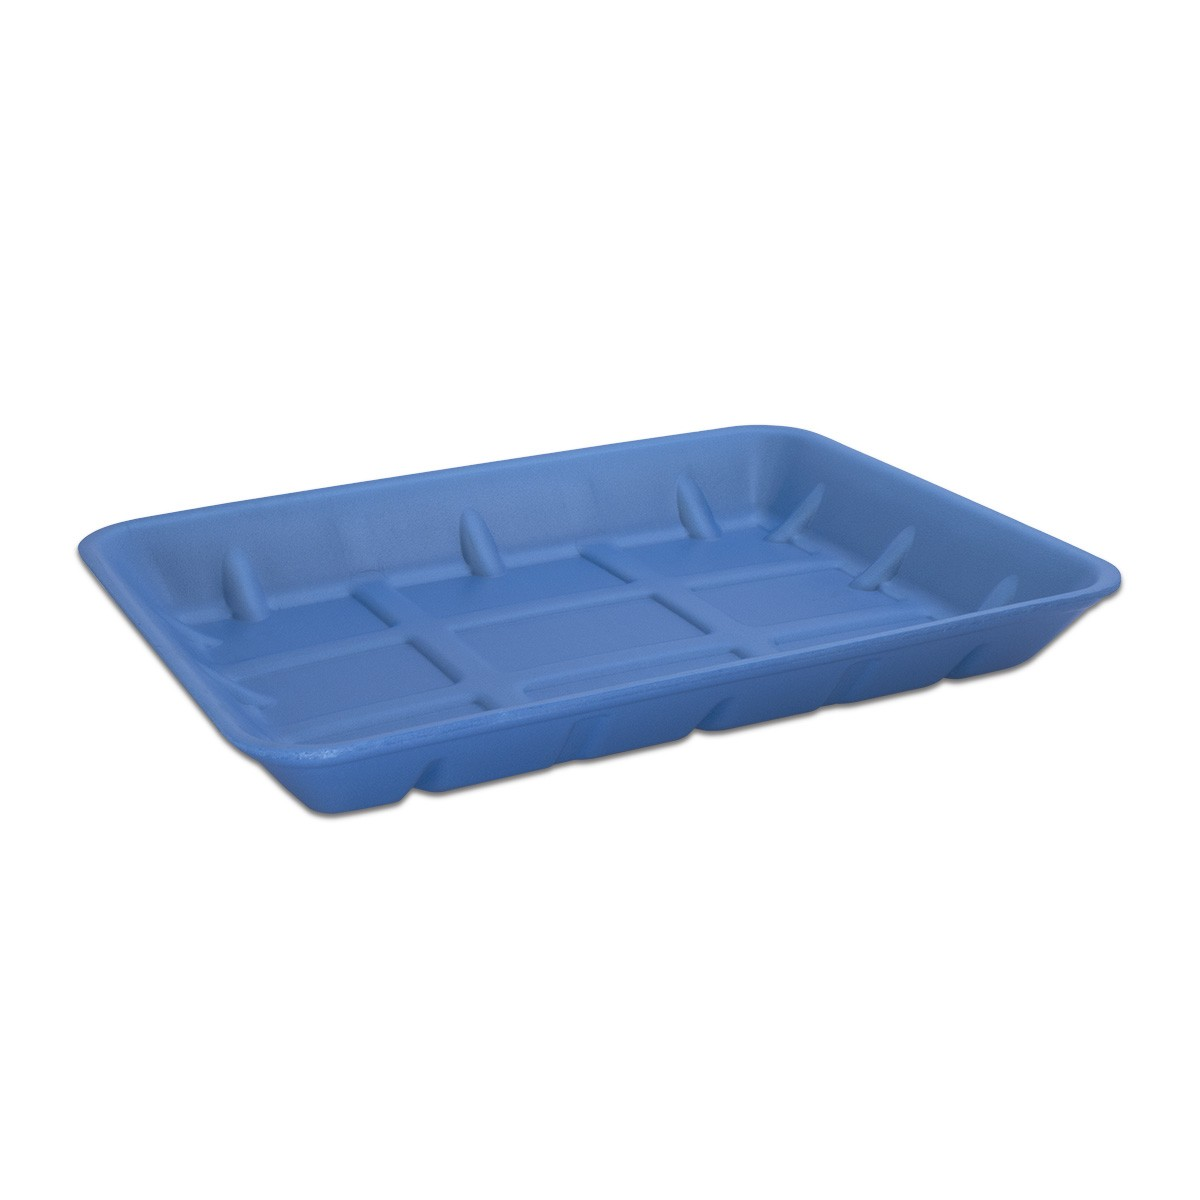 Foam Tray 320x235x40mm - Blue | 100pcs